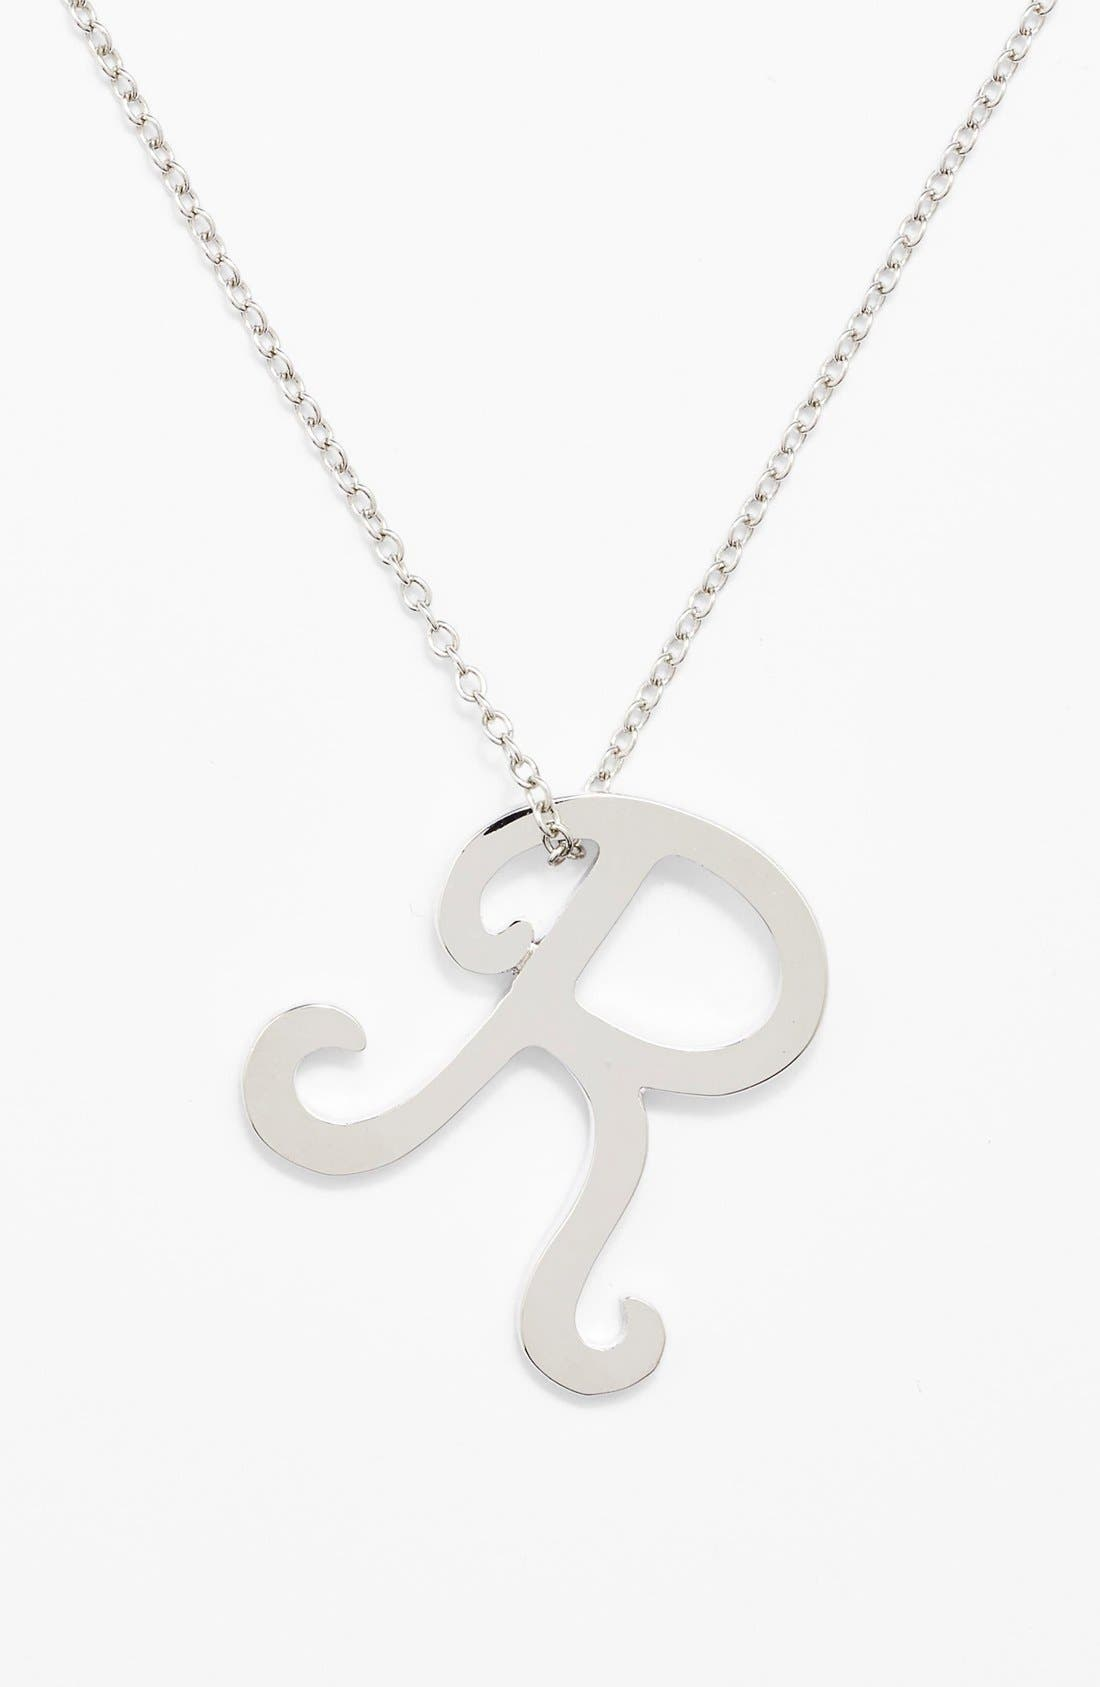 Main Image - Ariella Collection Silver Scroll Initial Pendant Necklace